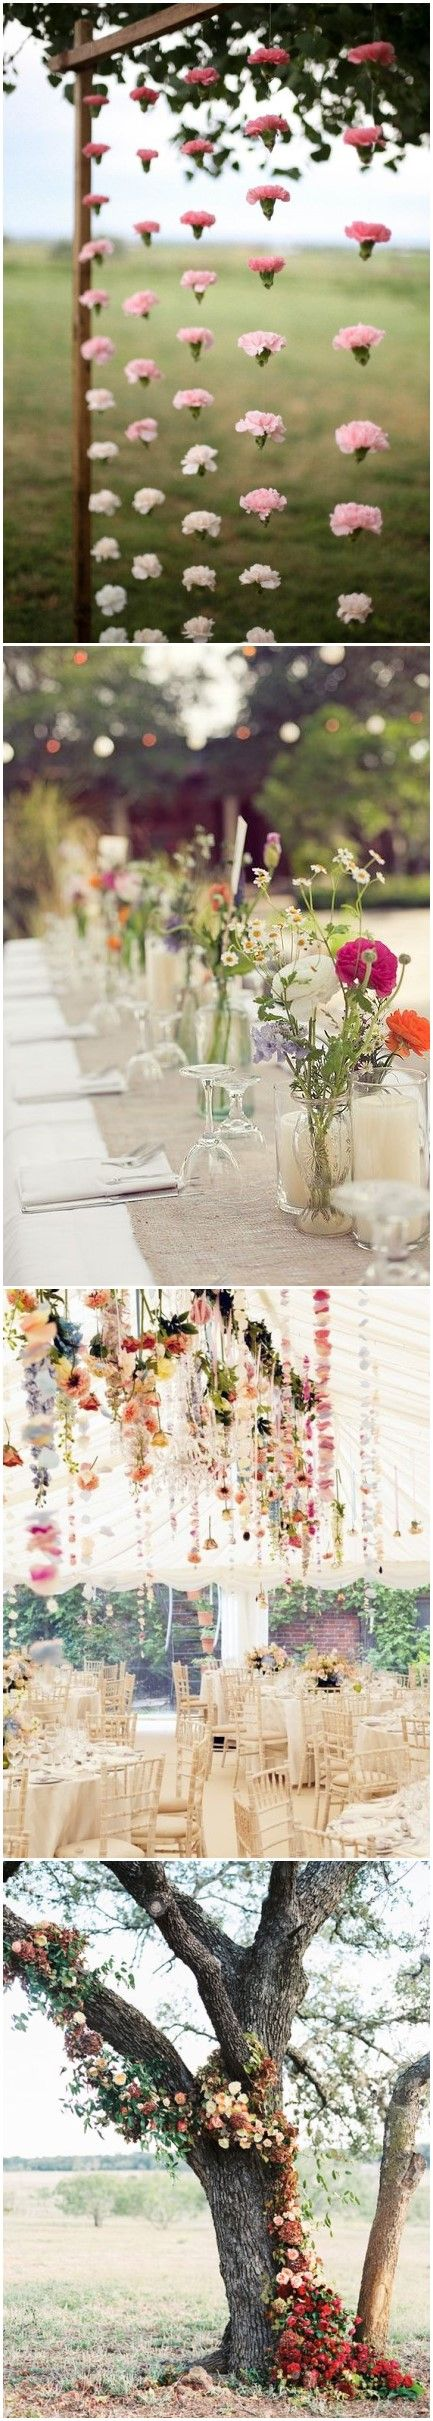 20+ gorgeous boho wedding décor ideas on pinterest | bohemian